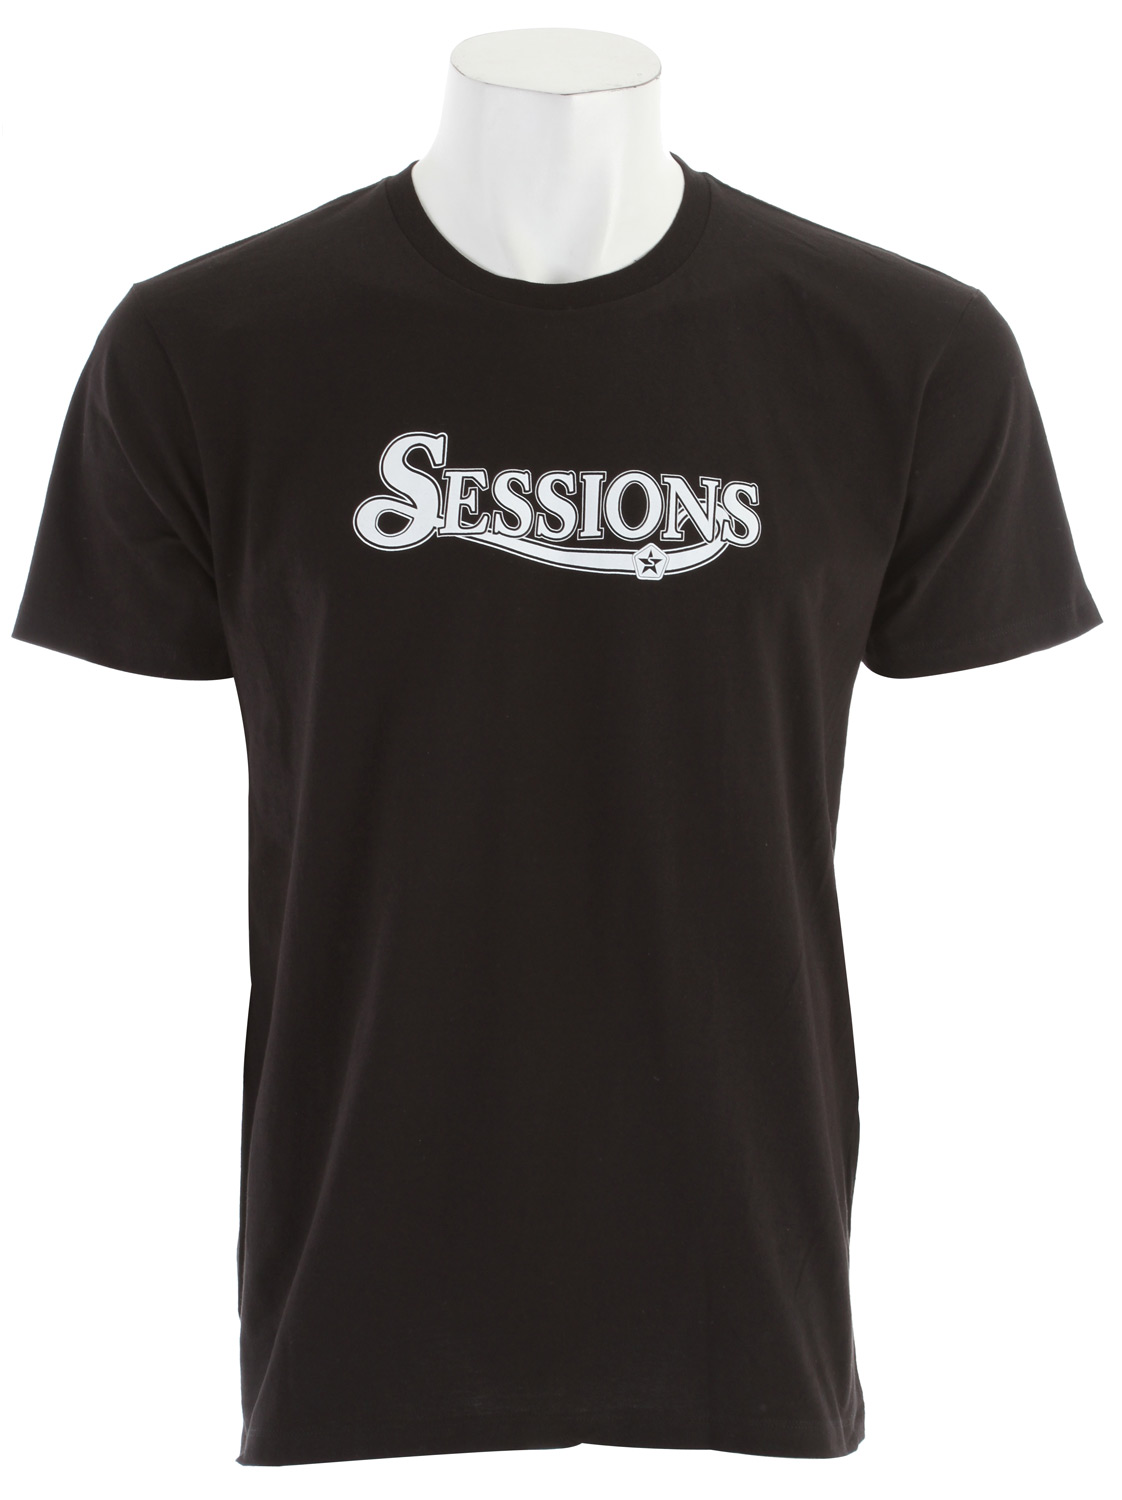 Key Features of the Sessions Triumph T-Shirt: Regular Fit Crew Neck Short Sleeve Screen Printed Fitted Short Sleeve Crew 55% Cotton/45% Polyester - $21.95